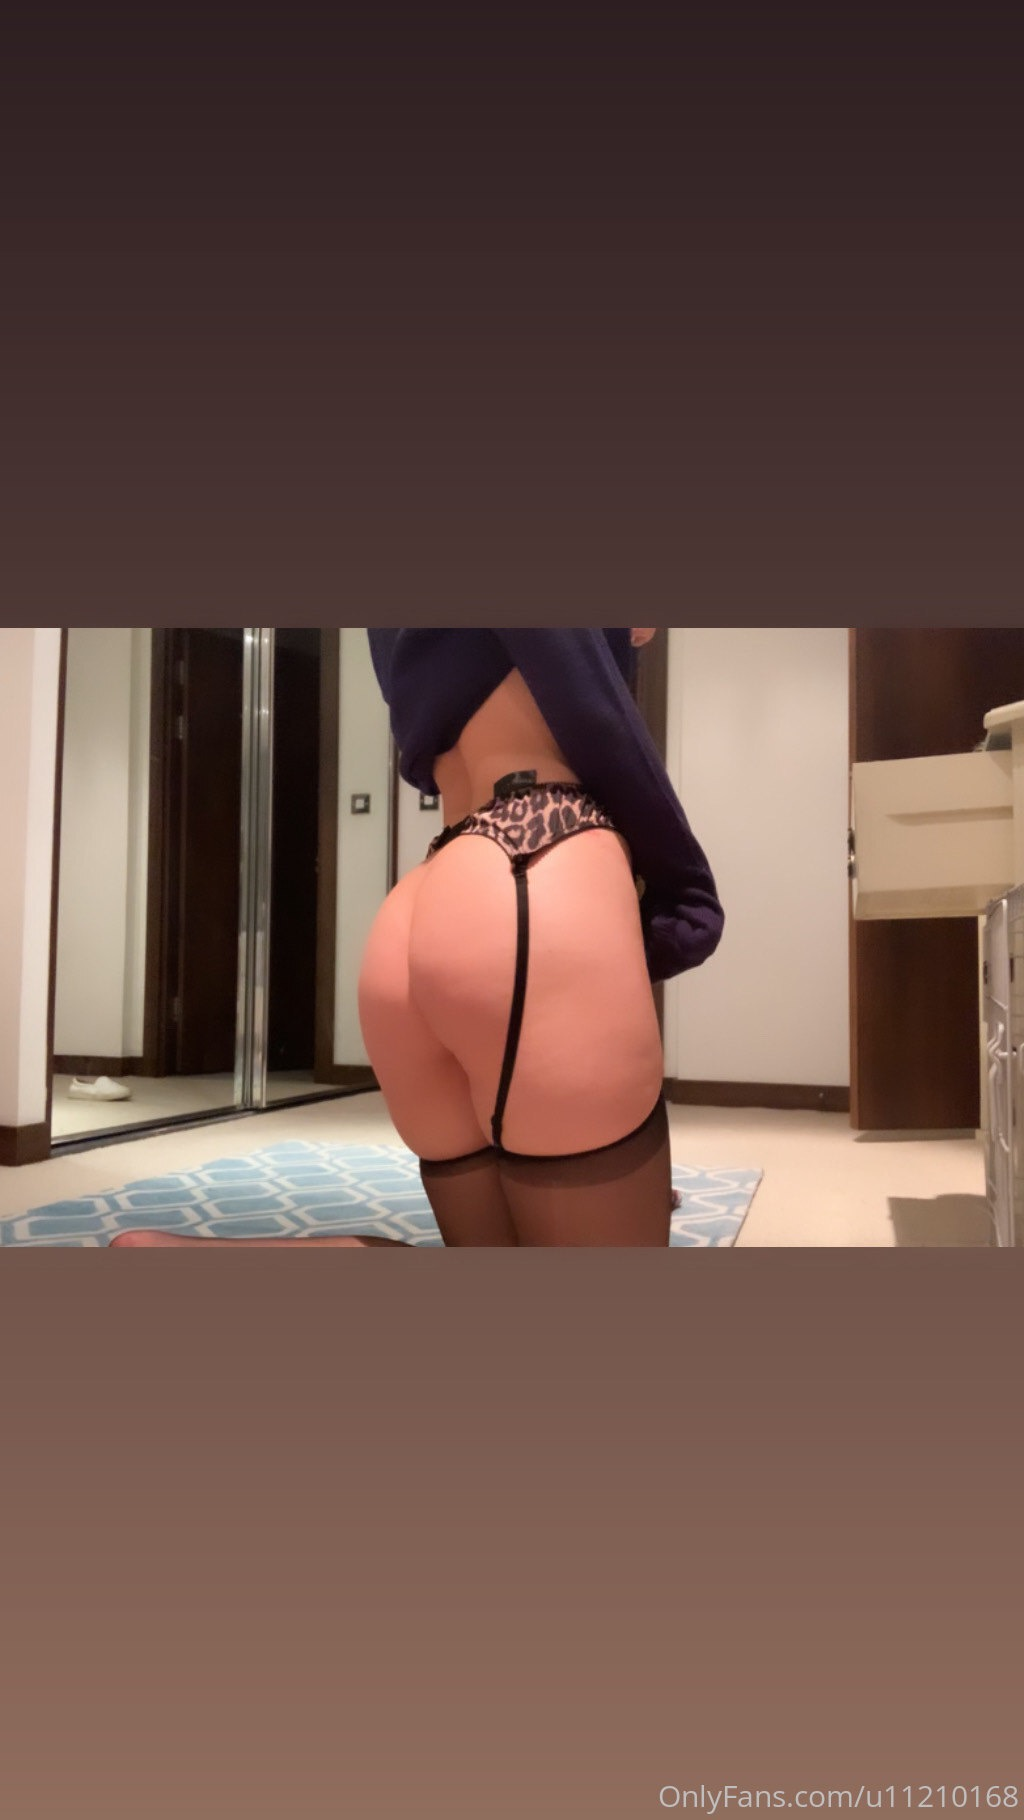 FULL VIDEO: Kirsty Austin Nude Onlyfans Leaked! *NEW*